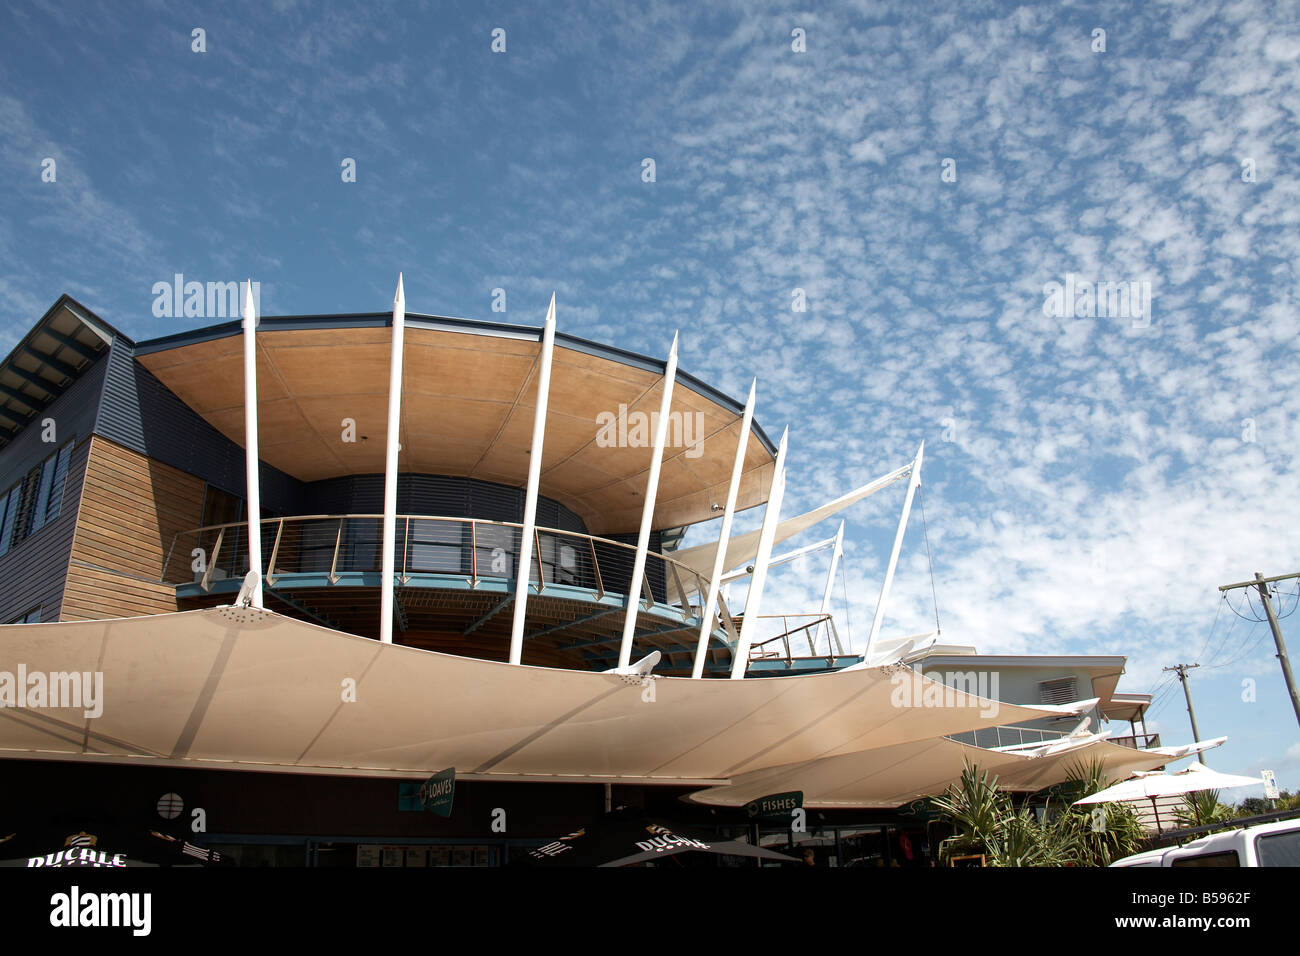 Cafe and restaurant building on North Stradbroke Island Queensland QLD Australia - Stock Image